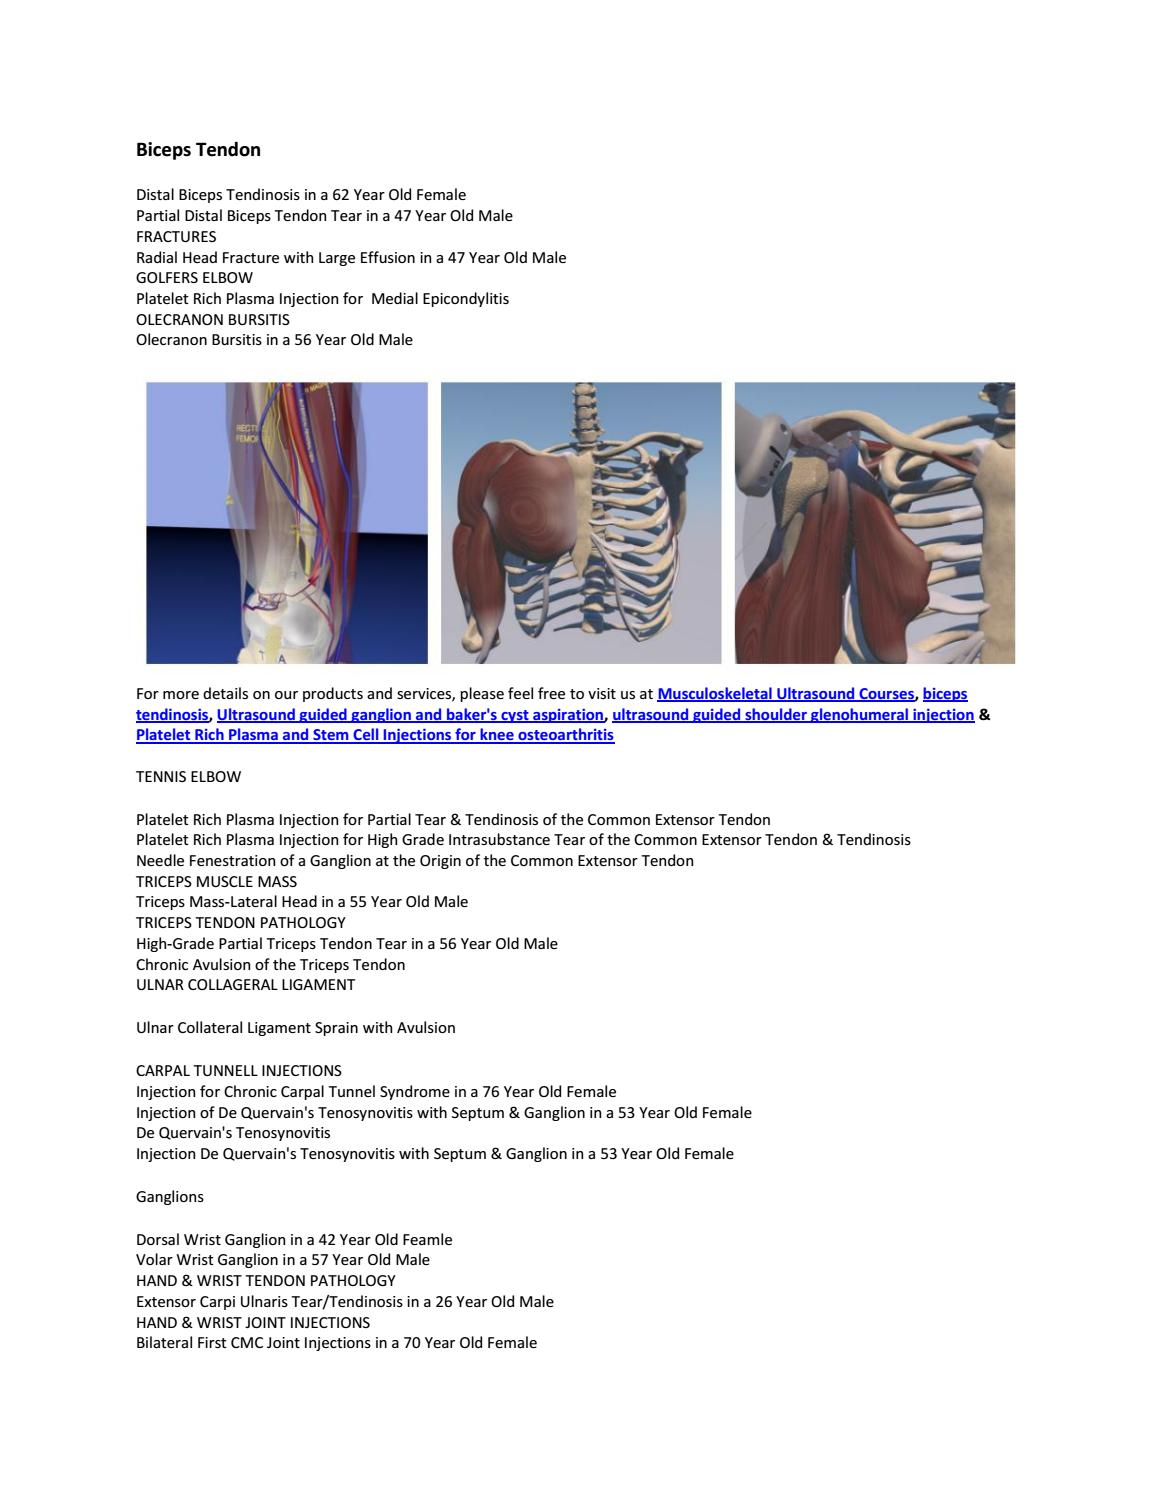 Biceps Tendon By Probeultrasound02 Issuu